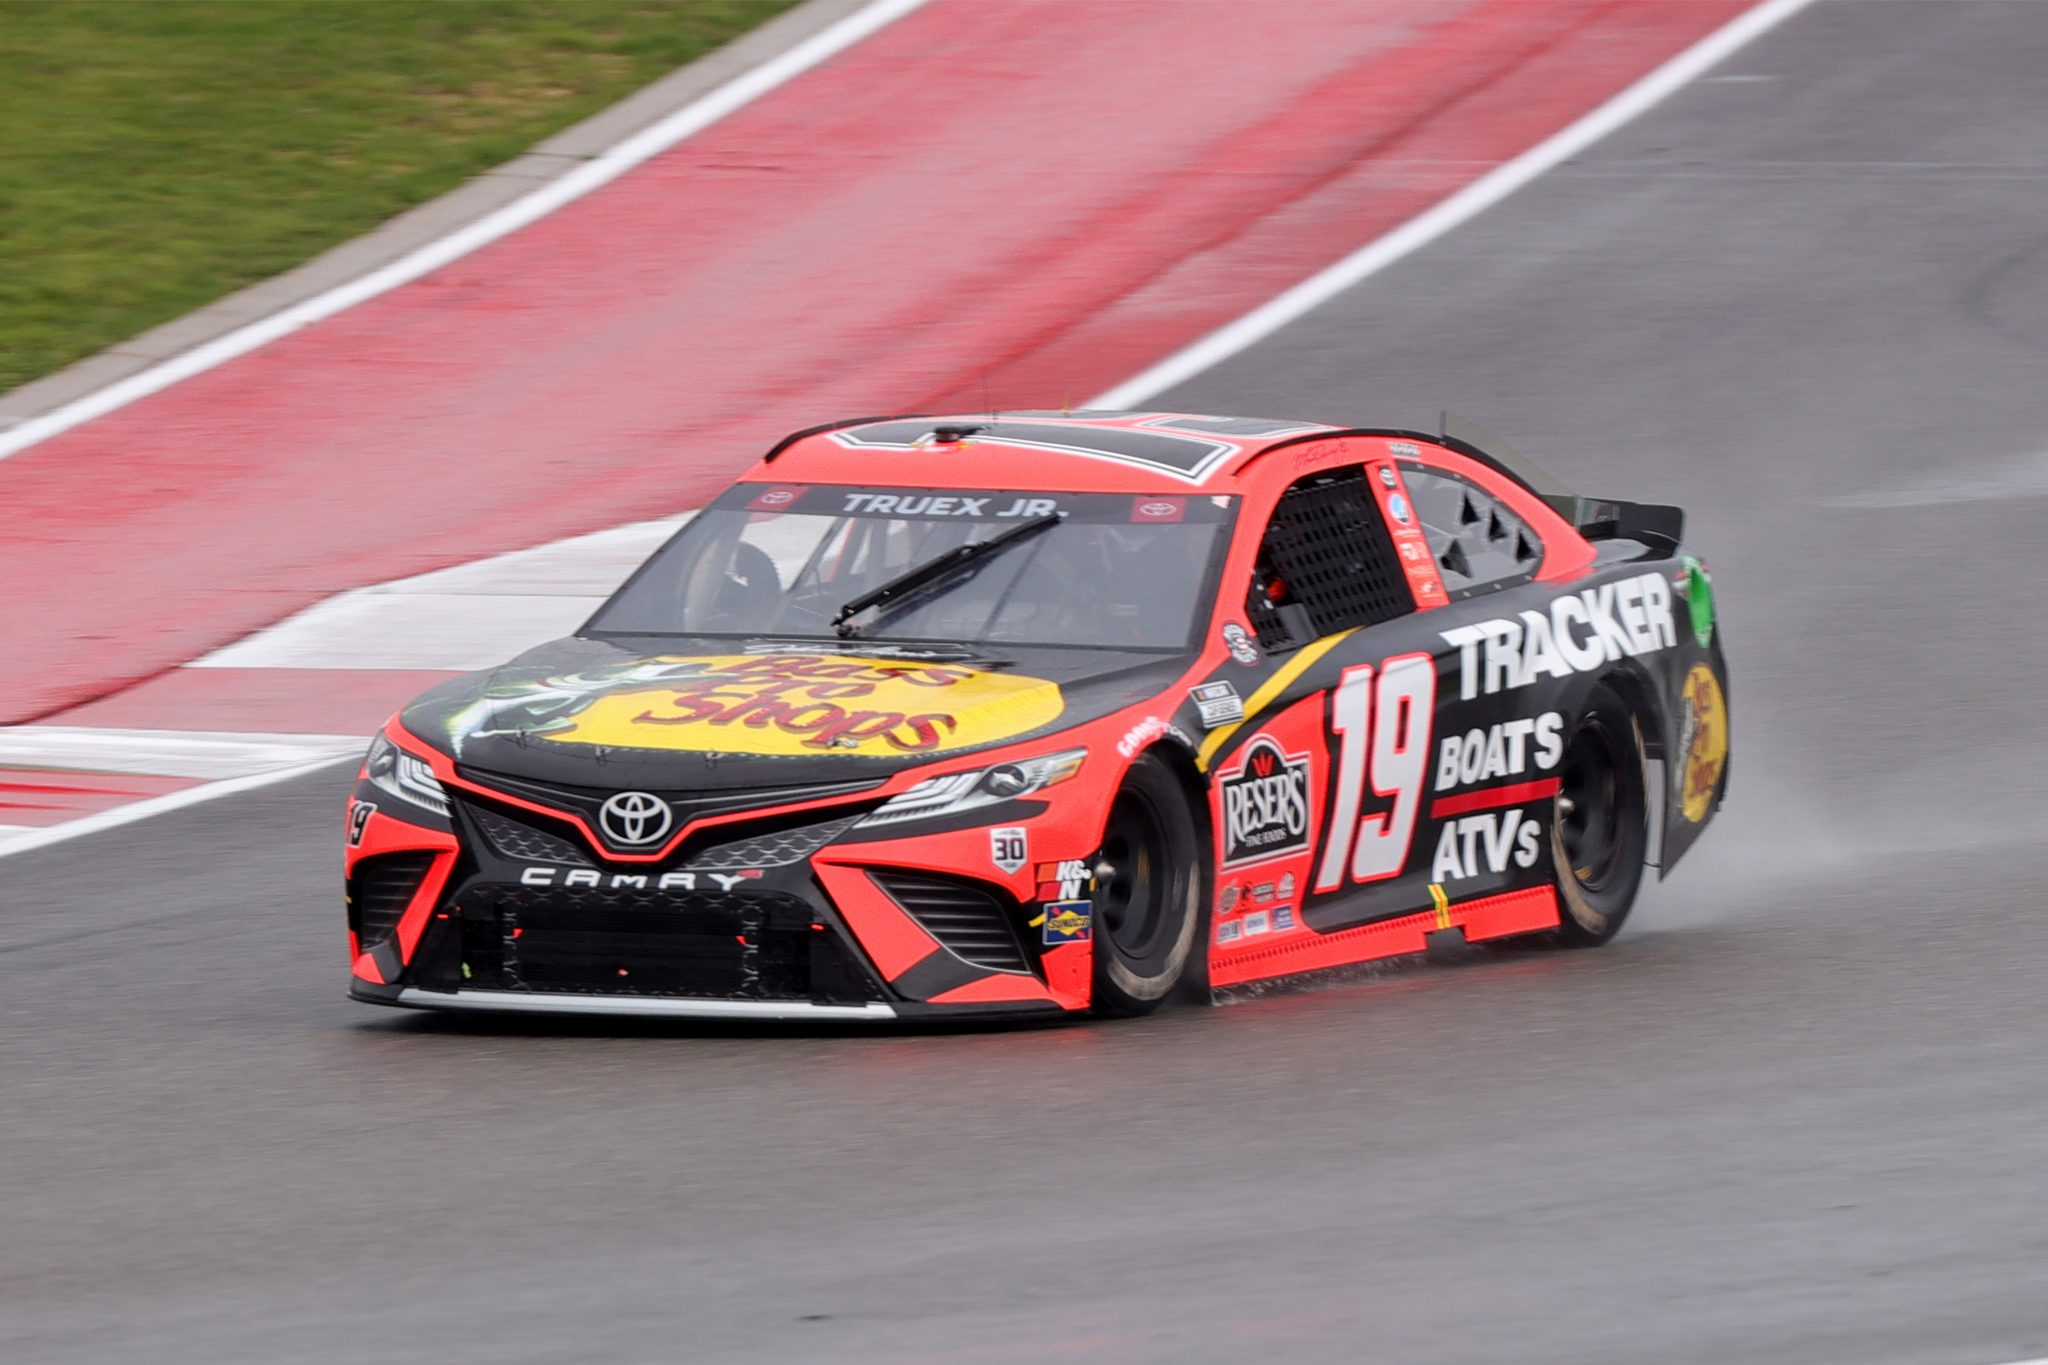 AUSTIN, TEXAS - MAY 23: Martin Truex Jr., driver of the #19 Bass Pro Toyota, drives during the NASCAR Cup Series EchoPark Texas Grand Prix at Circuit of The Americas on May 23, 2021 in Austin, Texas. (Photo by Carmen Mandato/Getty Images) | Getty Images